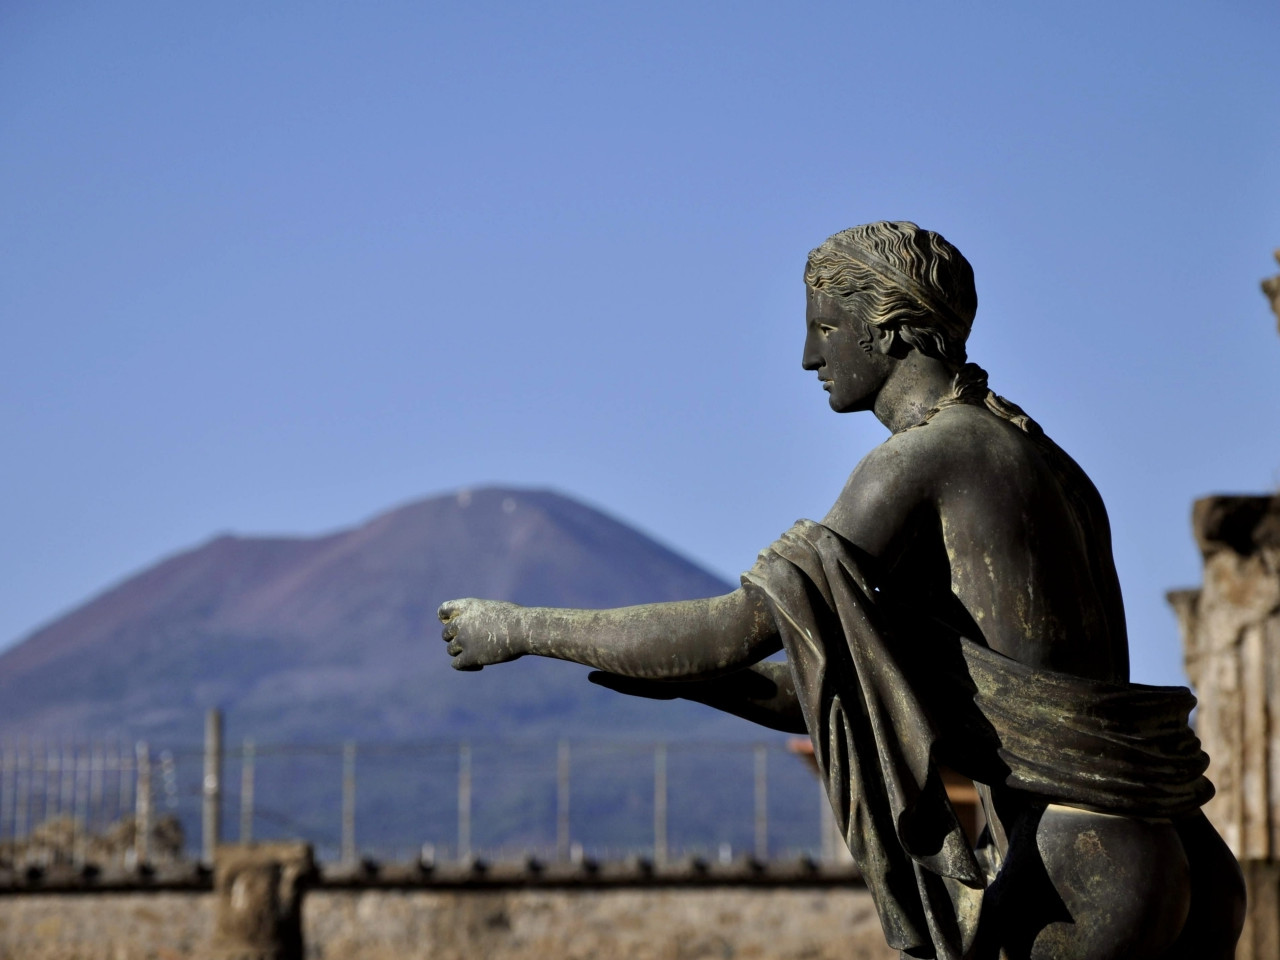 Pompeii excavations: statue of Tiberius - Private tour to Pompeii and Sorrento